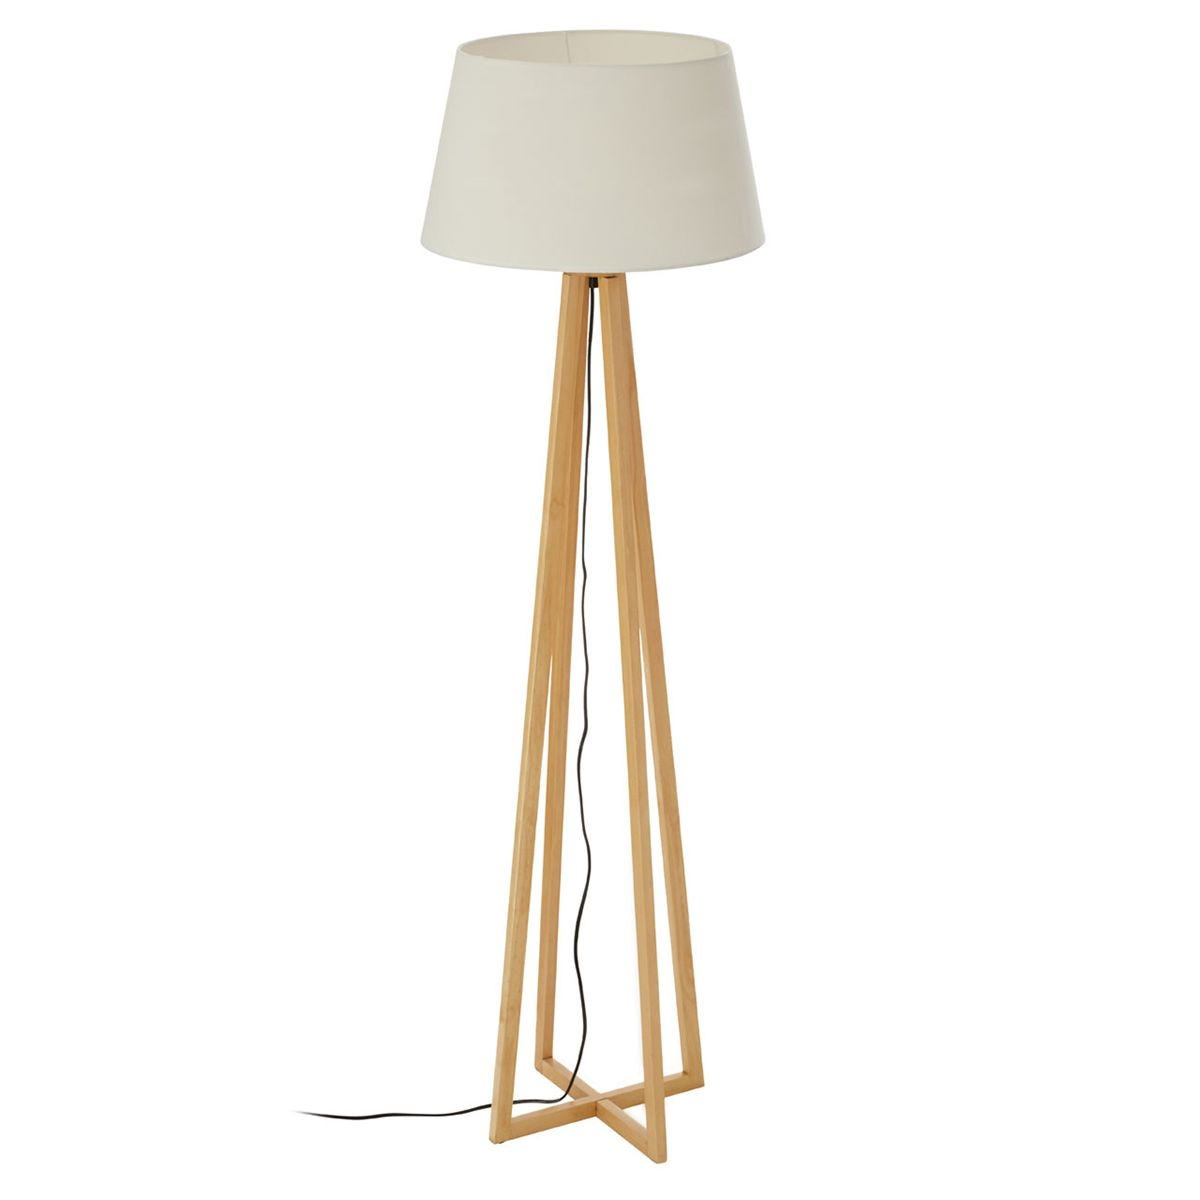 Premier Housewares Breton Wooden Floor Lamp with Fabric Shade